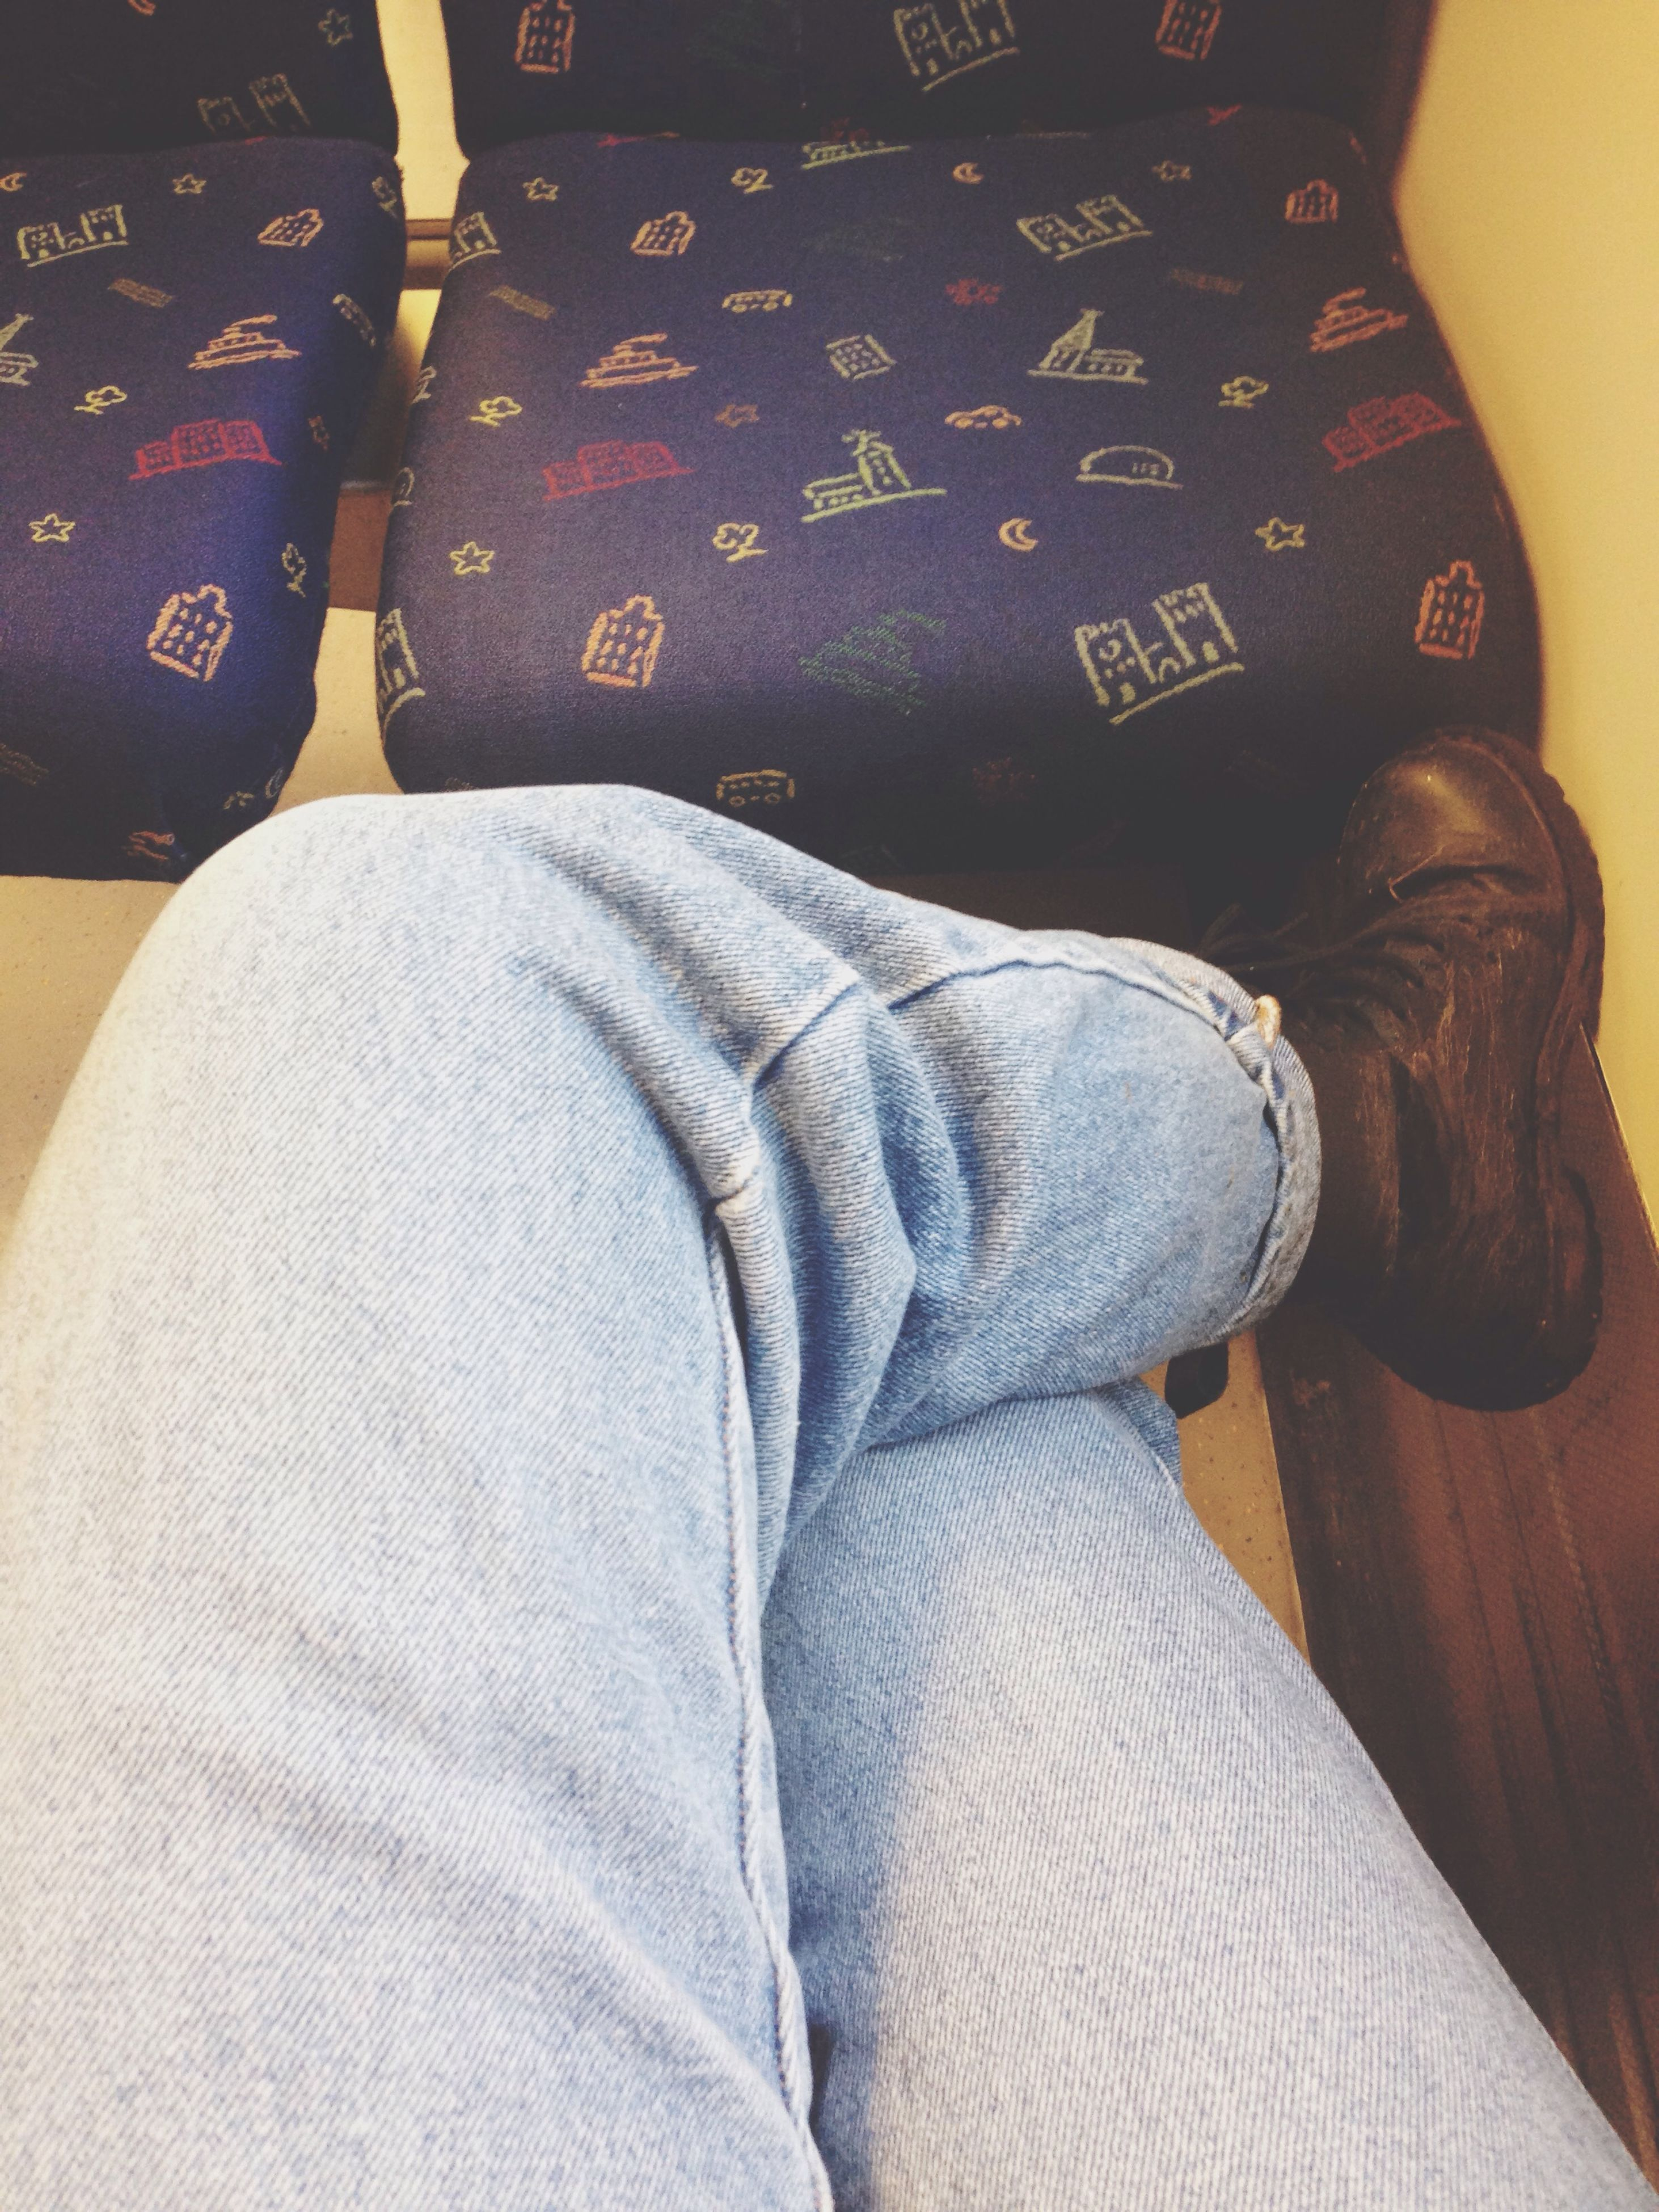 indoors, person, low section, jeans, shoe, human foot, lifestyles, casual clothing, high angle view, relaxation, footwear, personal perspective, close-up, bed, fashion, leisure activity, denim